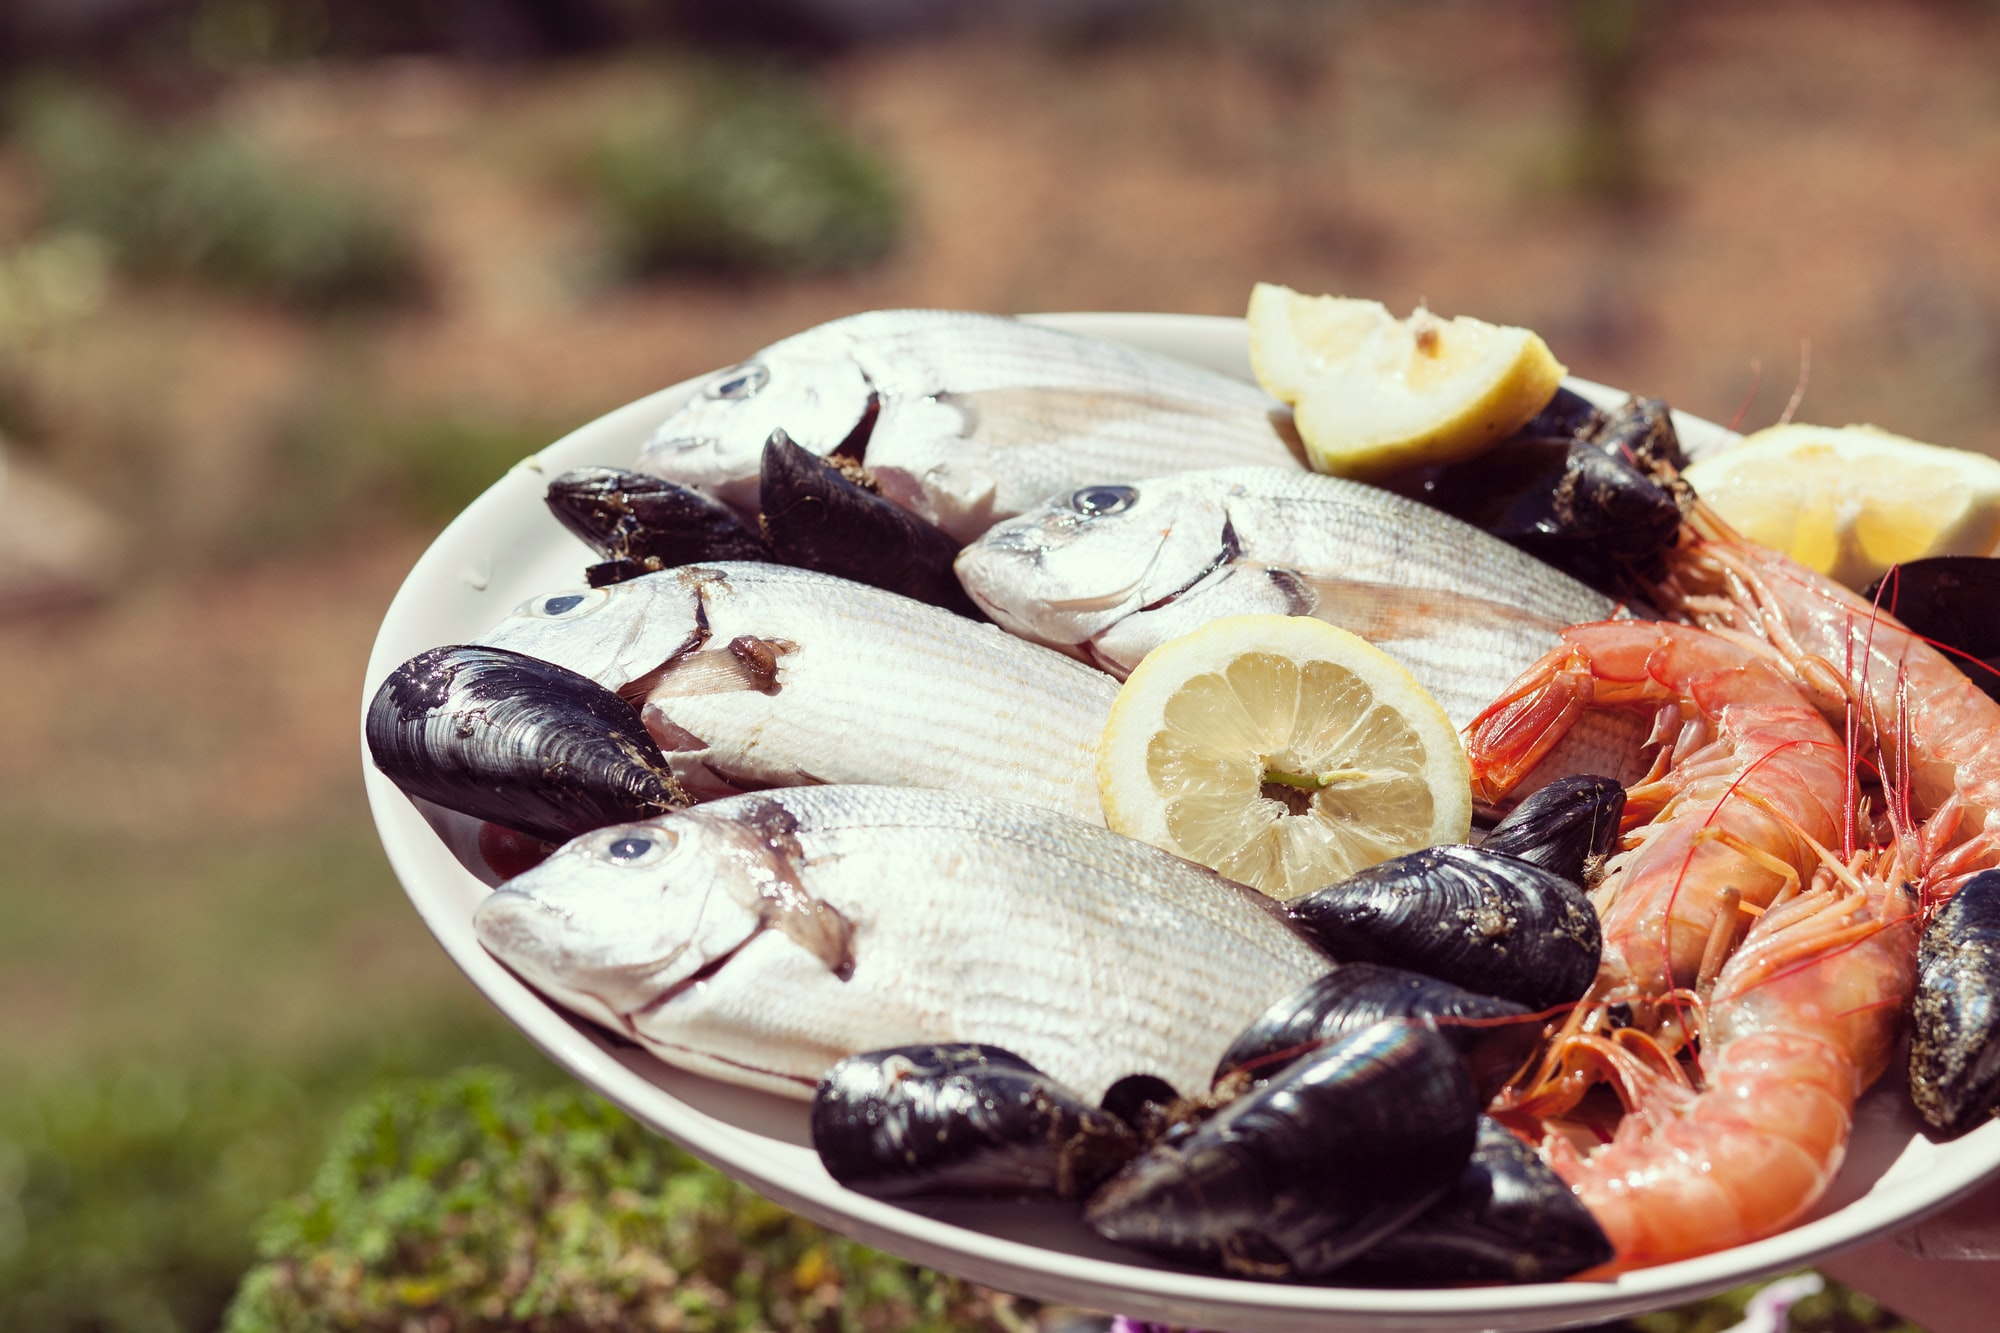 Fish and shellfish are food poisoning risk by Frank Vessia for Unsplash.